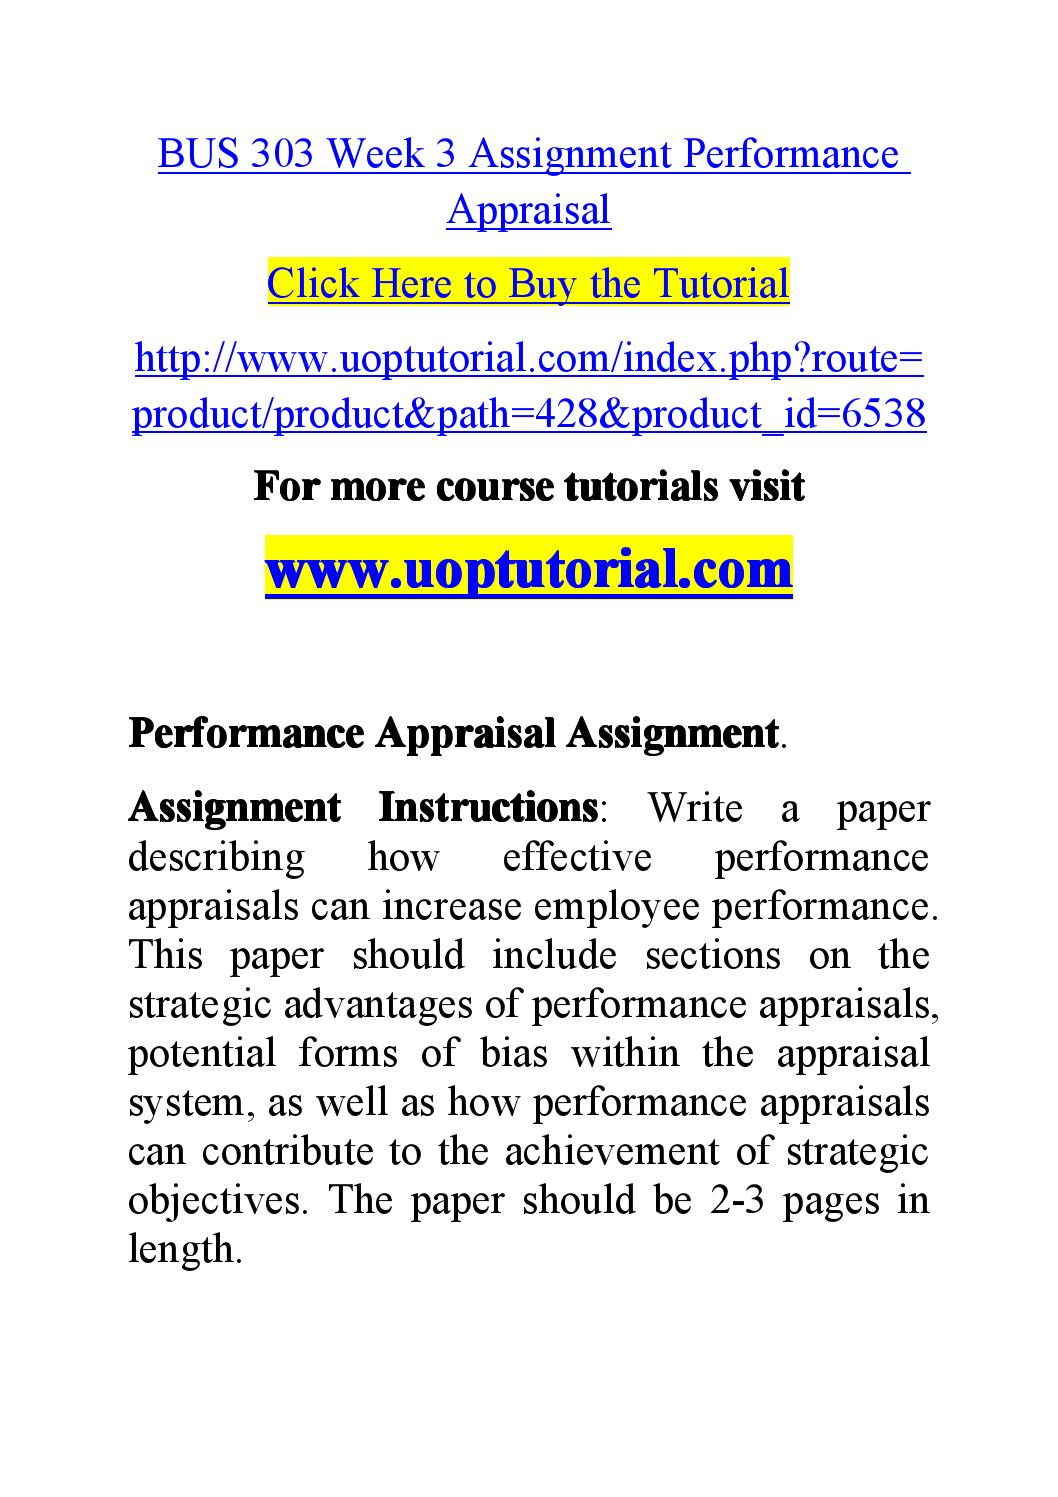 Potential forms of bias within the appraisal system